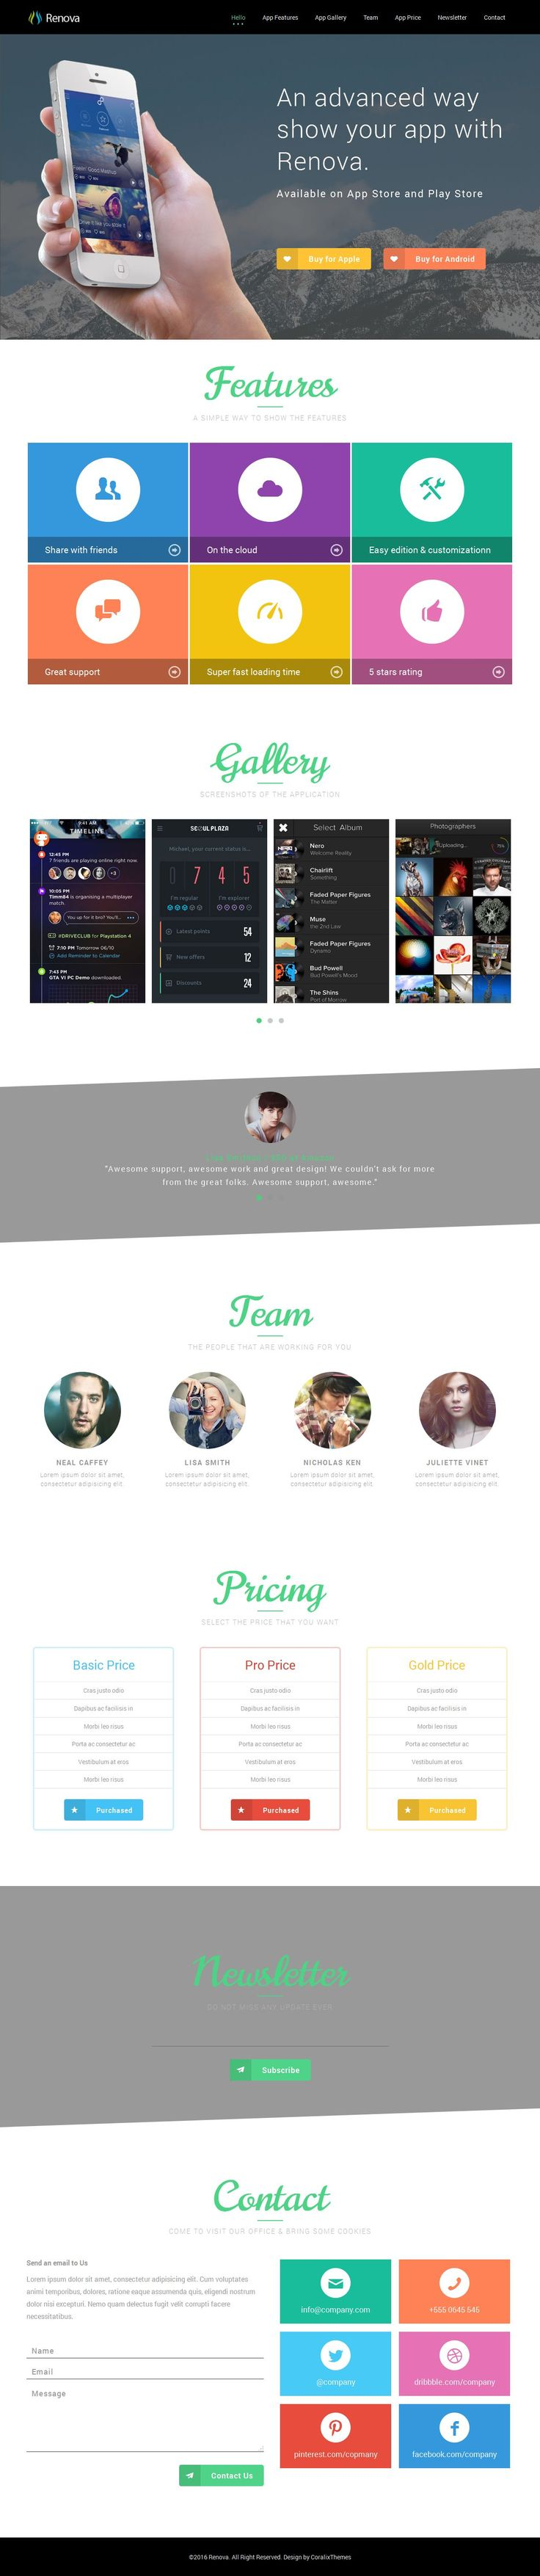 43 best Landing Page Templates images on Pinterest | Landing pages ...